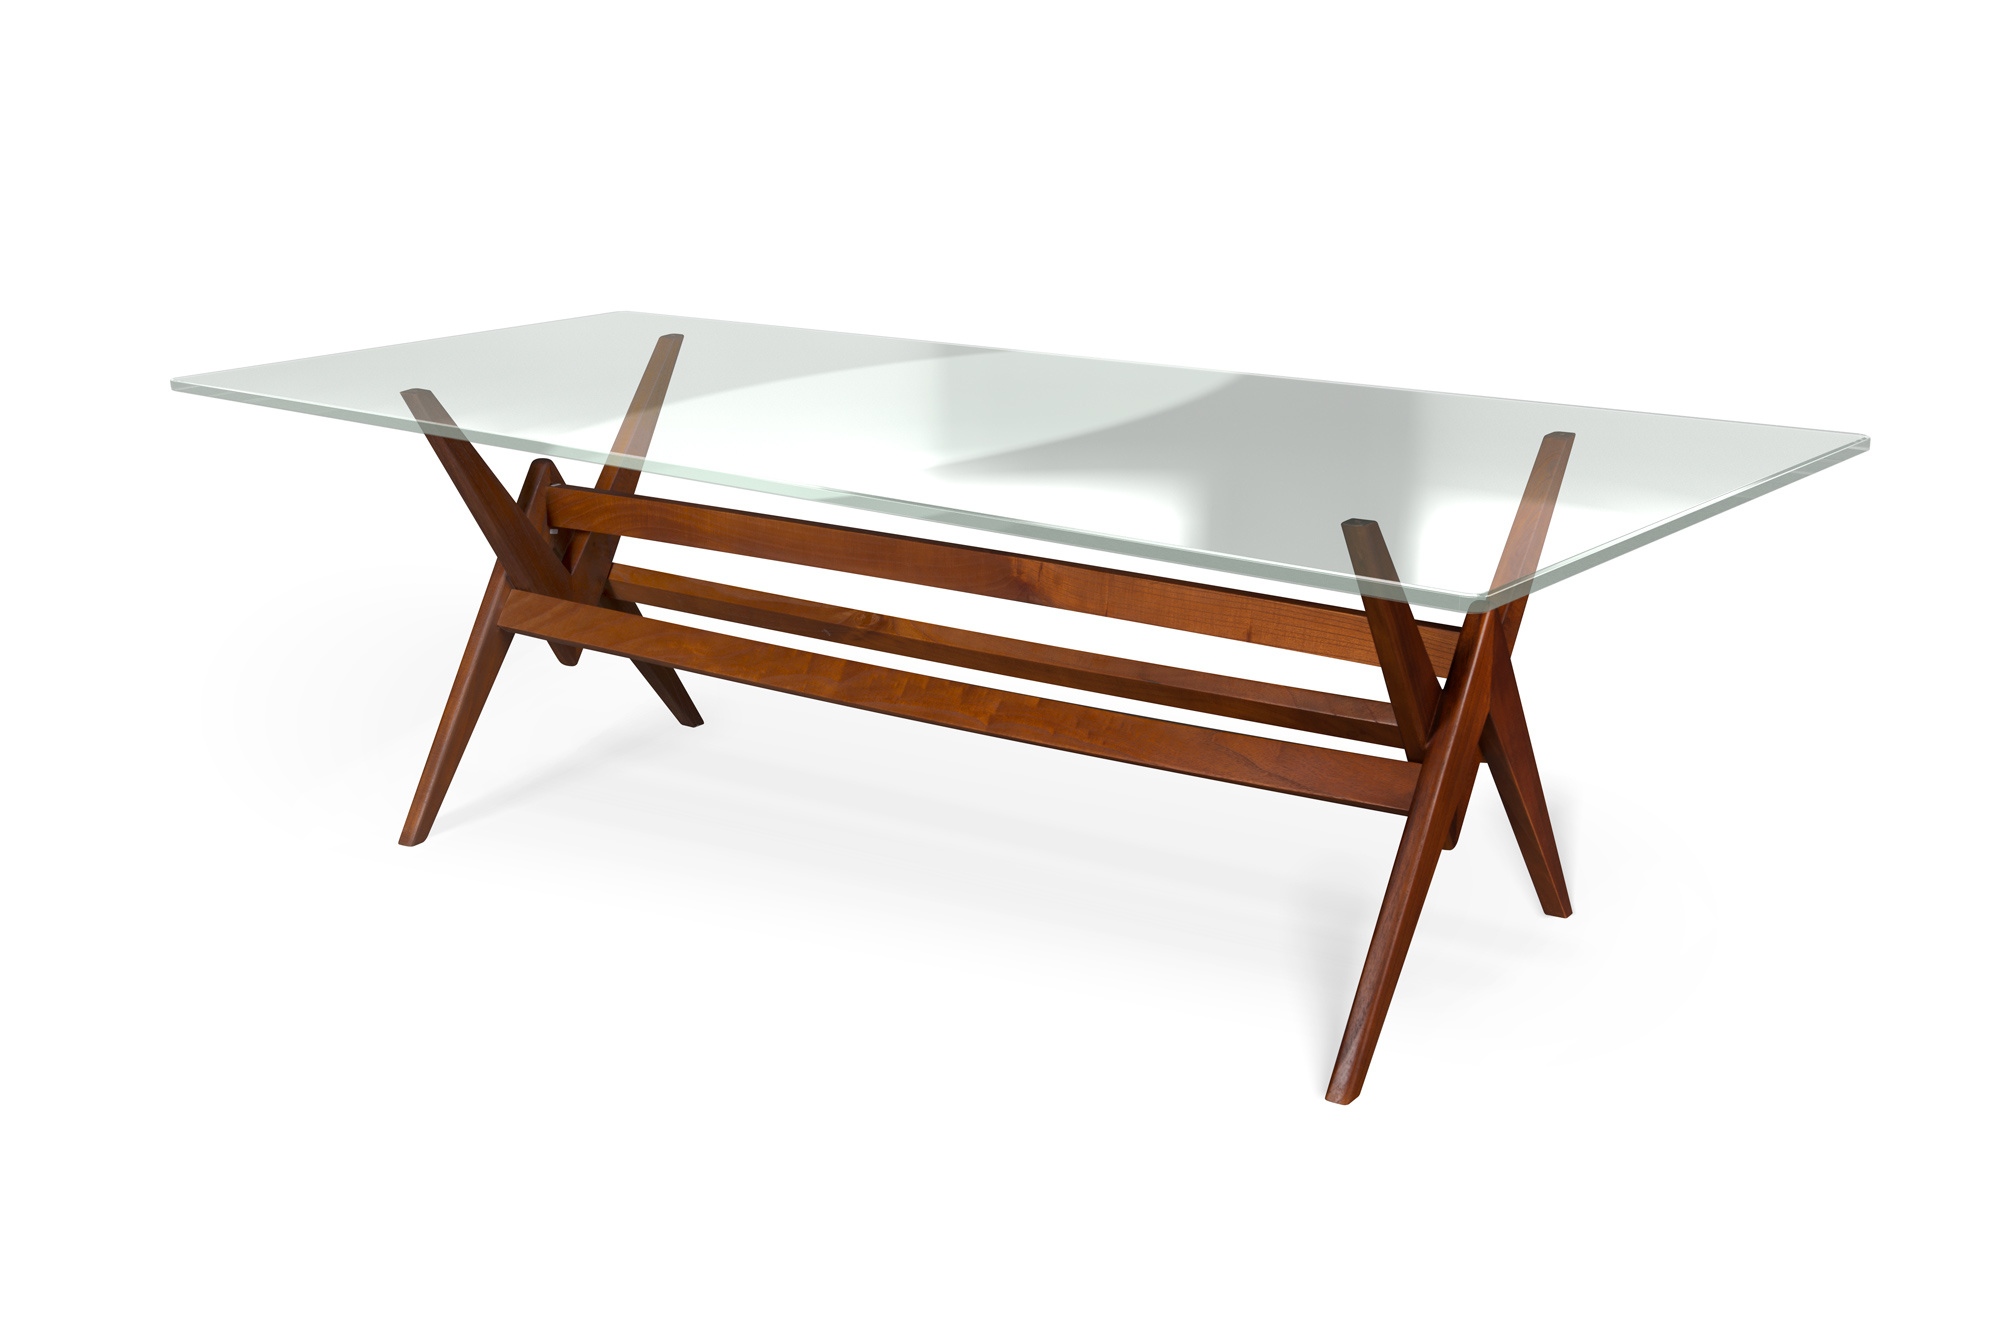 Table W.T.H. 220-2